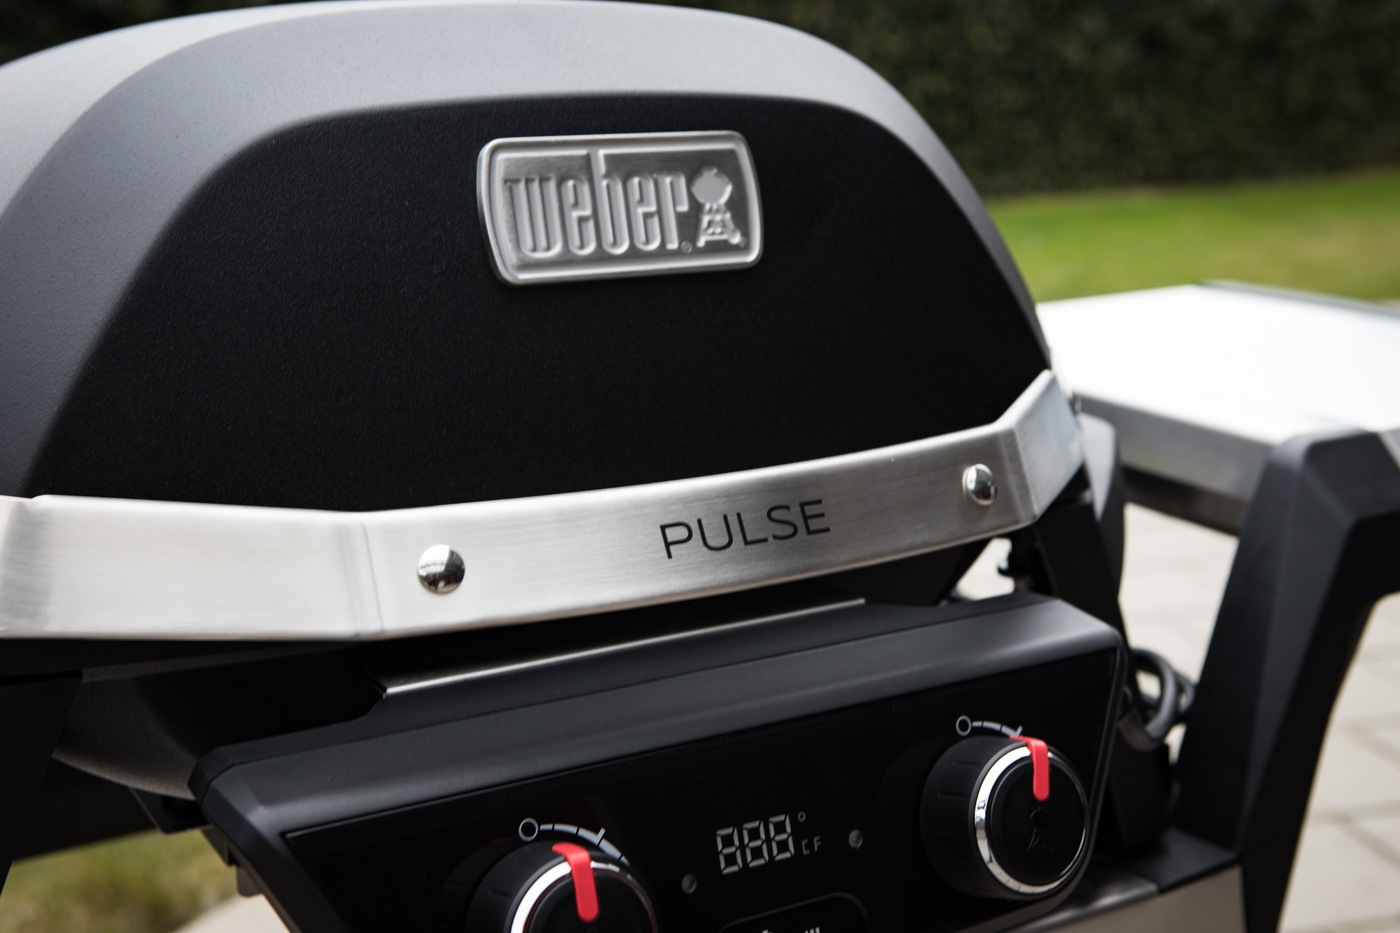 vorstellung weber pulse 2000 elektrogrill bbqlicate grill bbq blog. Black Bedroom Furniture Sets. Home Design Ideas